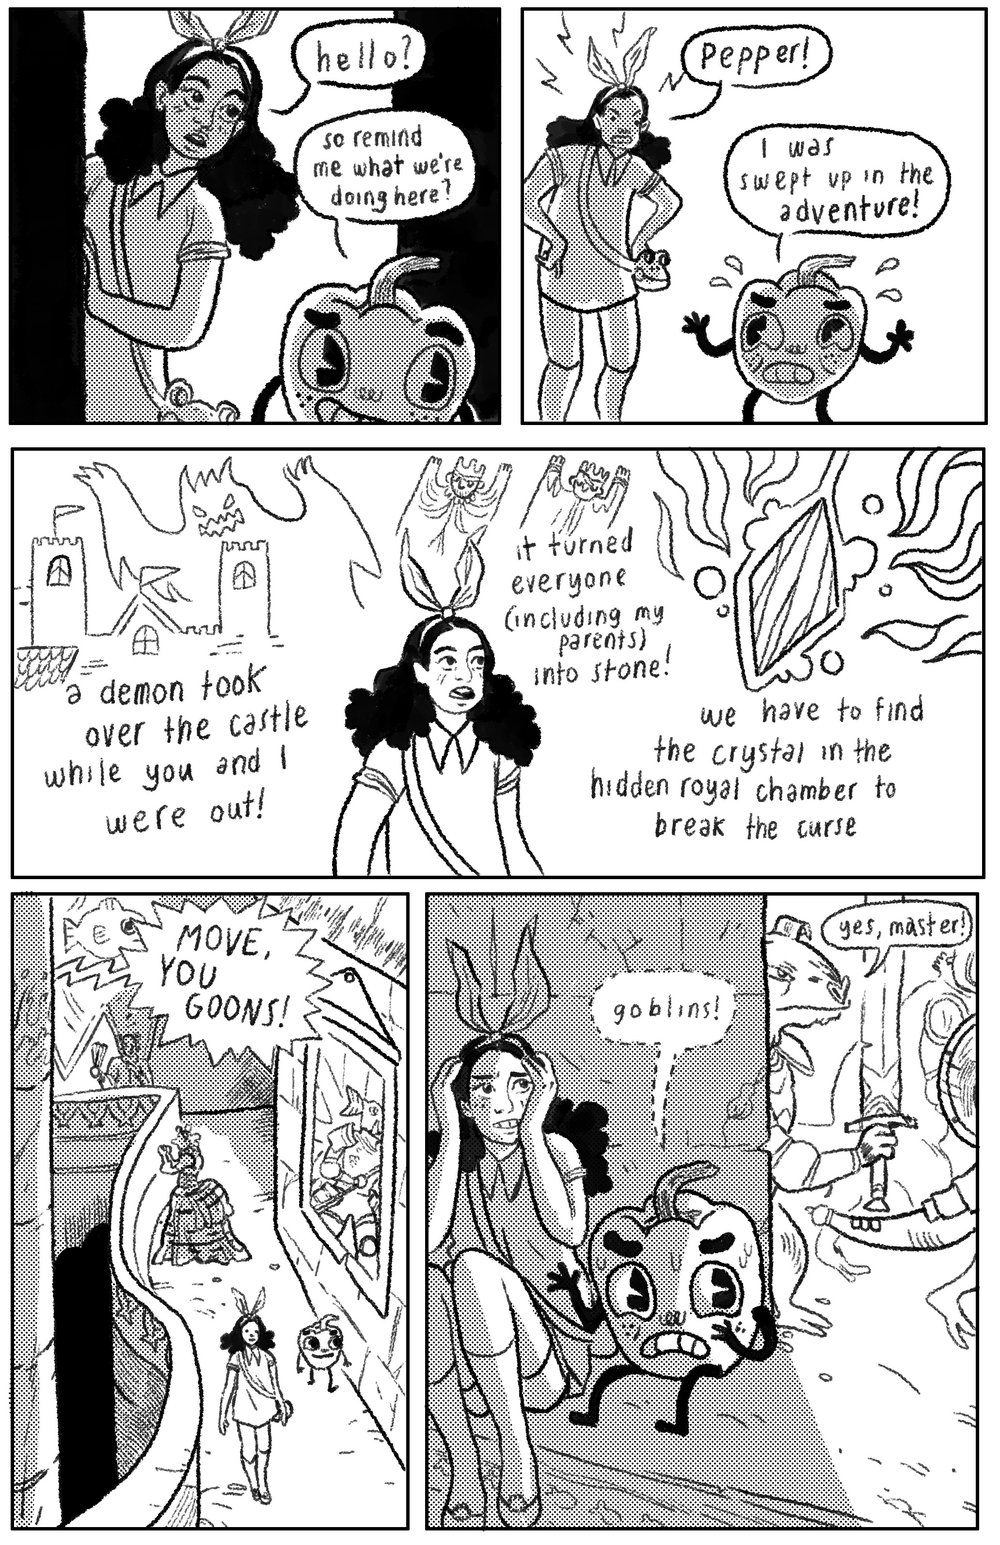 Princess and Pepper Page 2.jpg